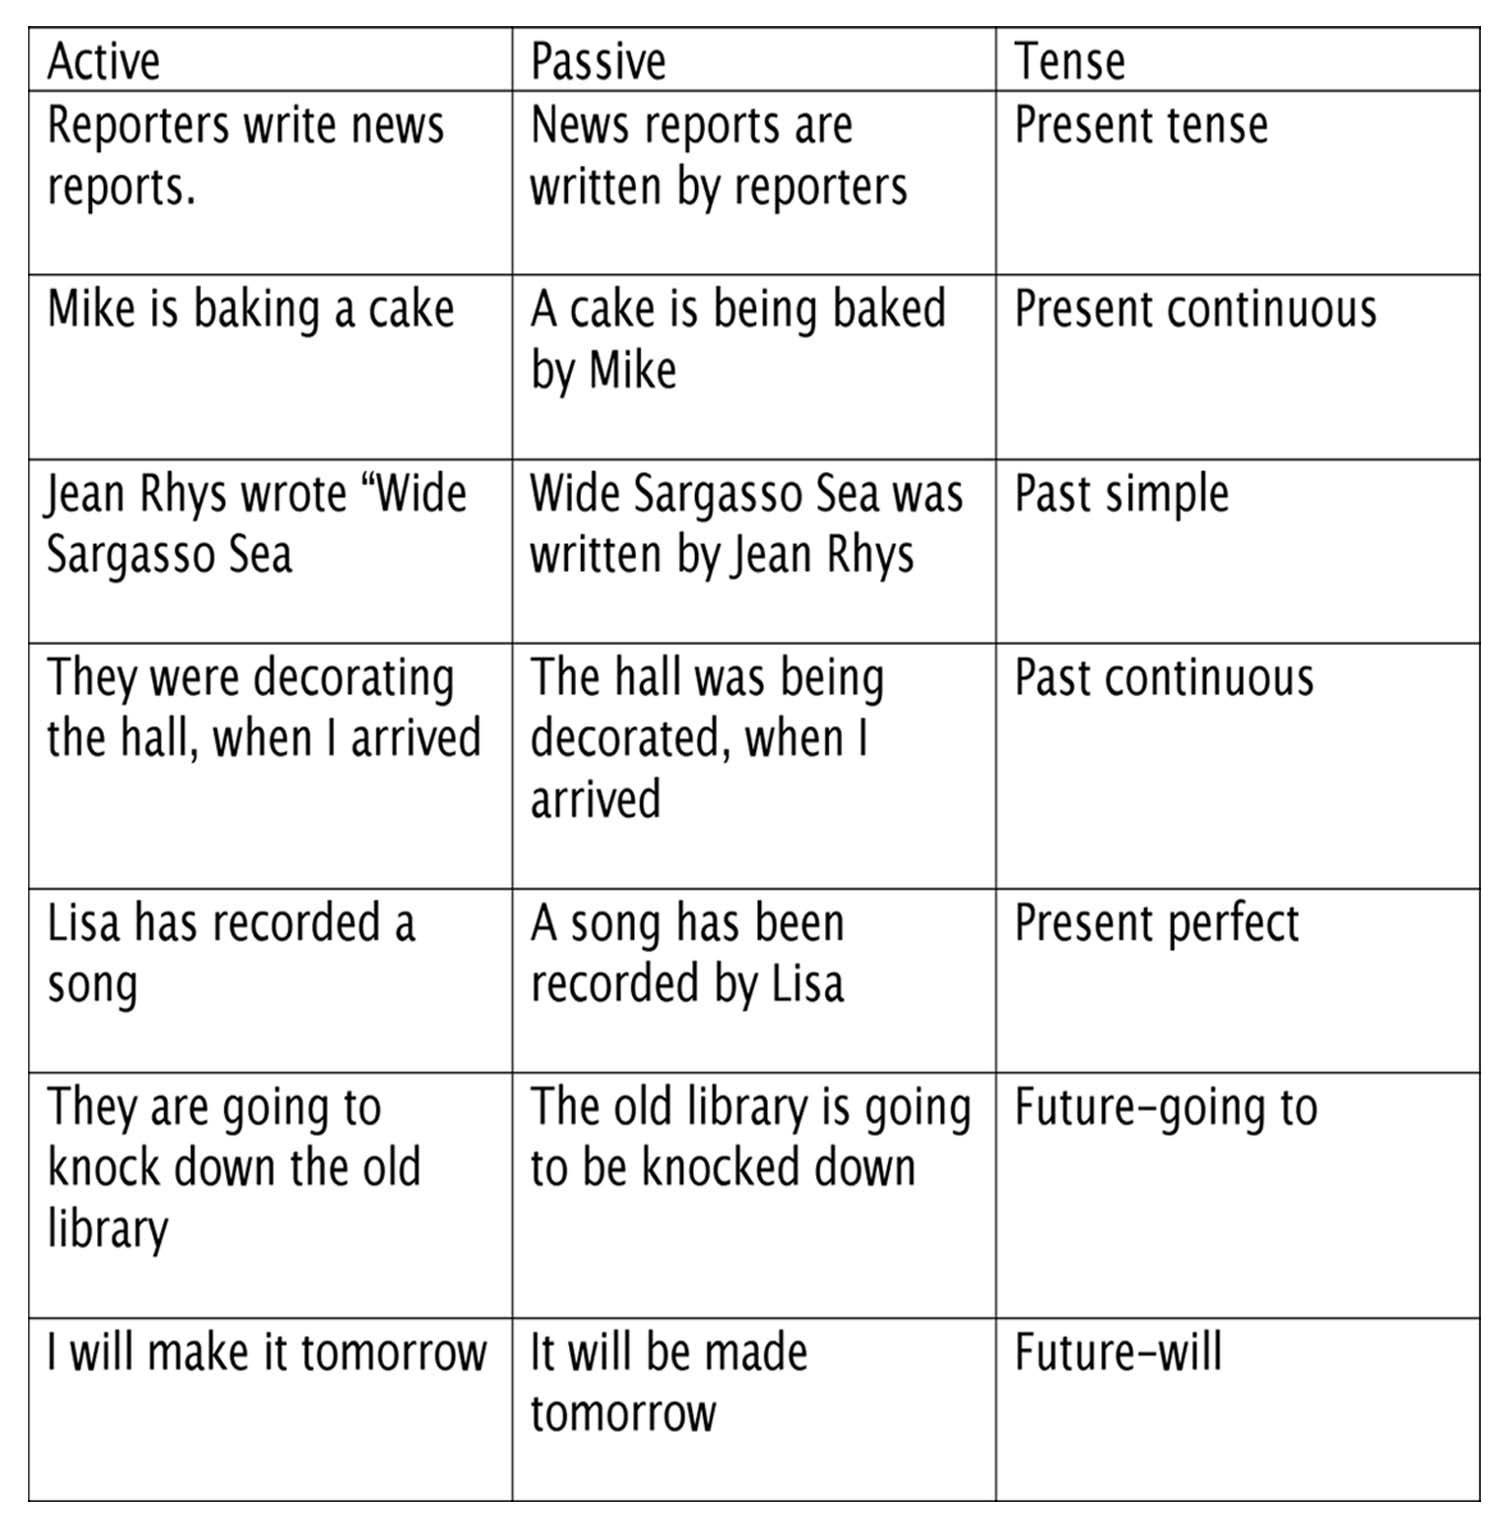 ... Larkins--YA Author: What Not to Write Part 2: Passive vs. Active Voice